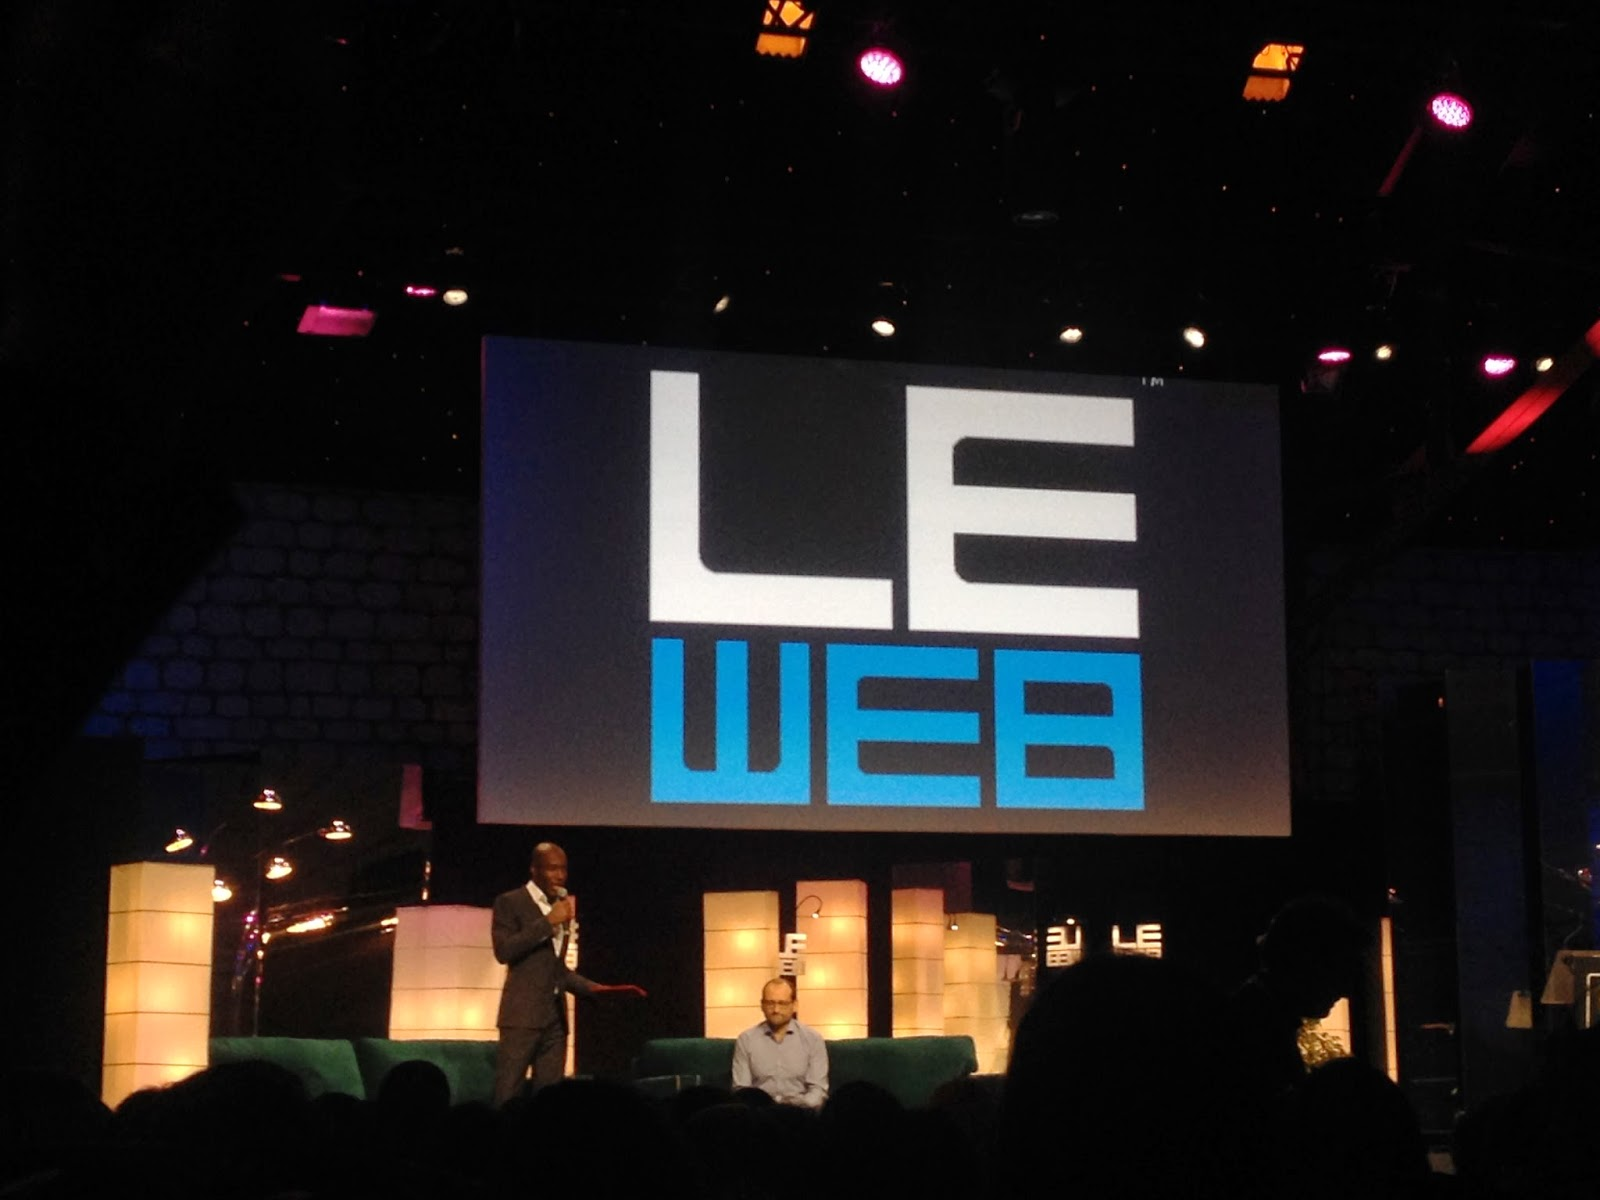 Michael Aidan and Anicet Mbida at LeWeb'14 Paris